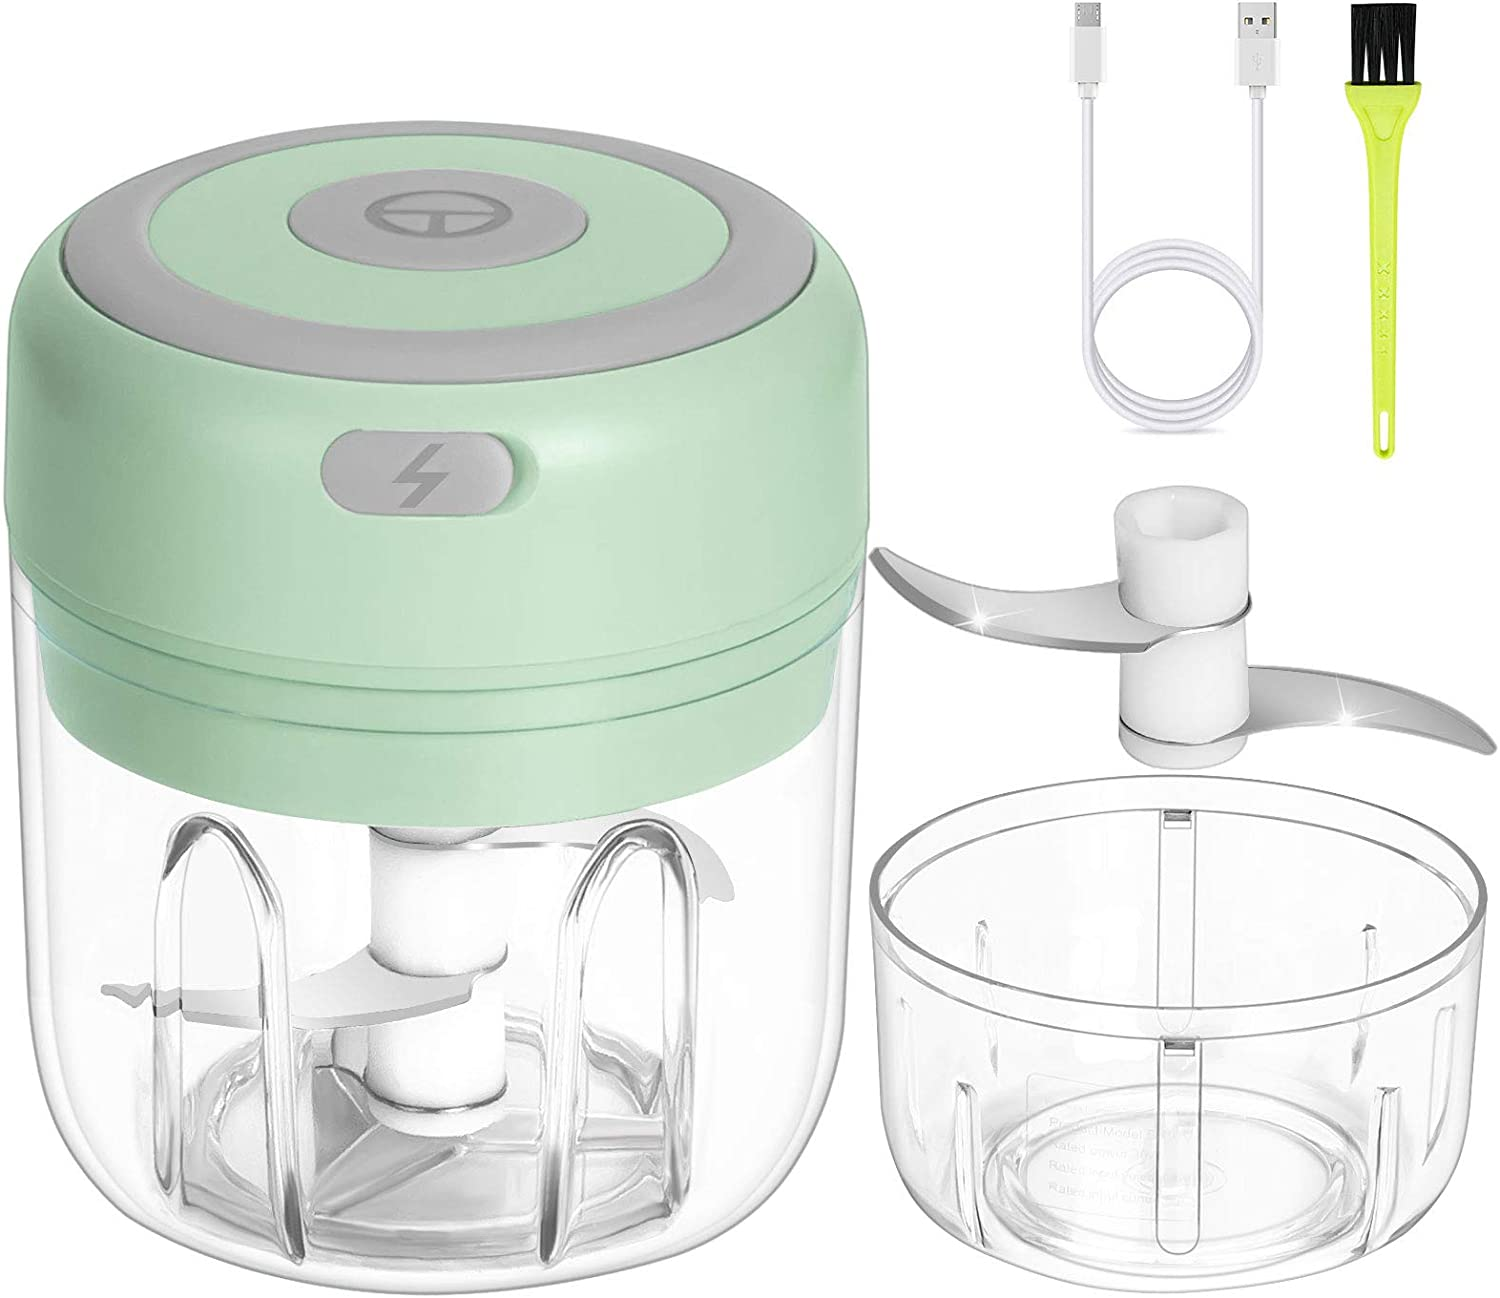 Garlic Chopper Electric, Mini Food Processor Set with 2 Cup (250ML & 100ML), Portable Garlic Slicer, Onion Masher, Ginger Chopper Blender for, Vegetables, Nuts, Pepper, Meat, Baby Food